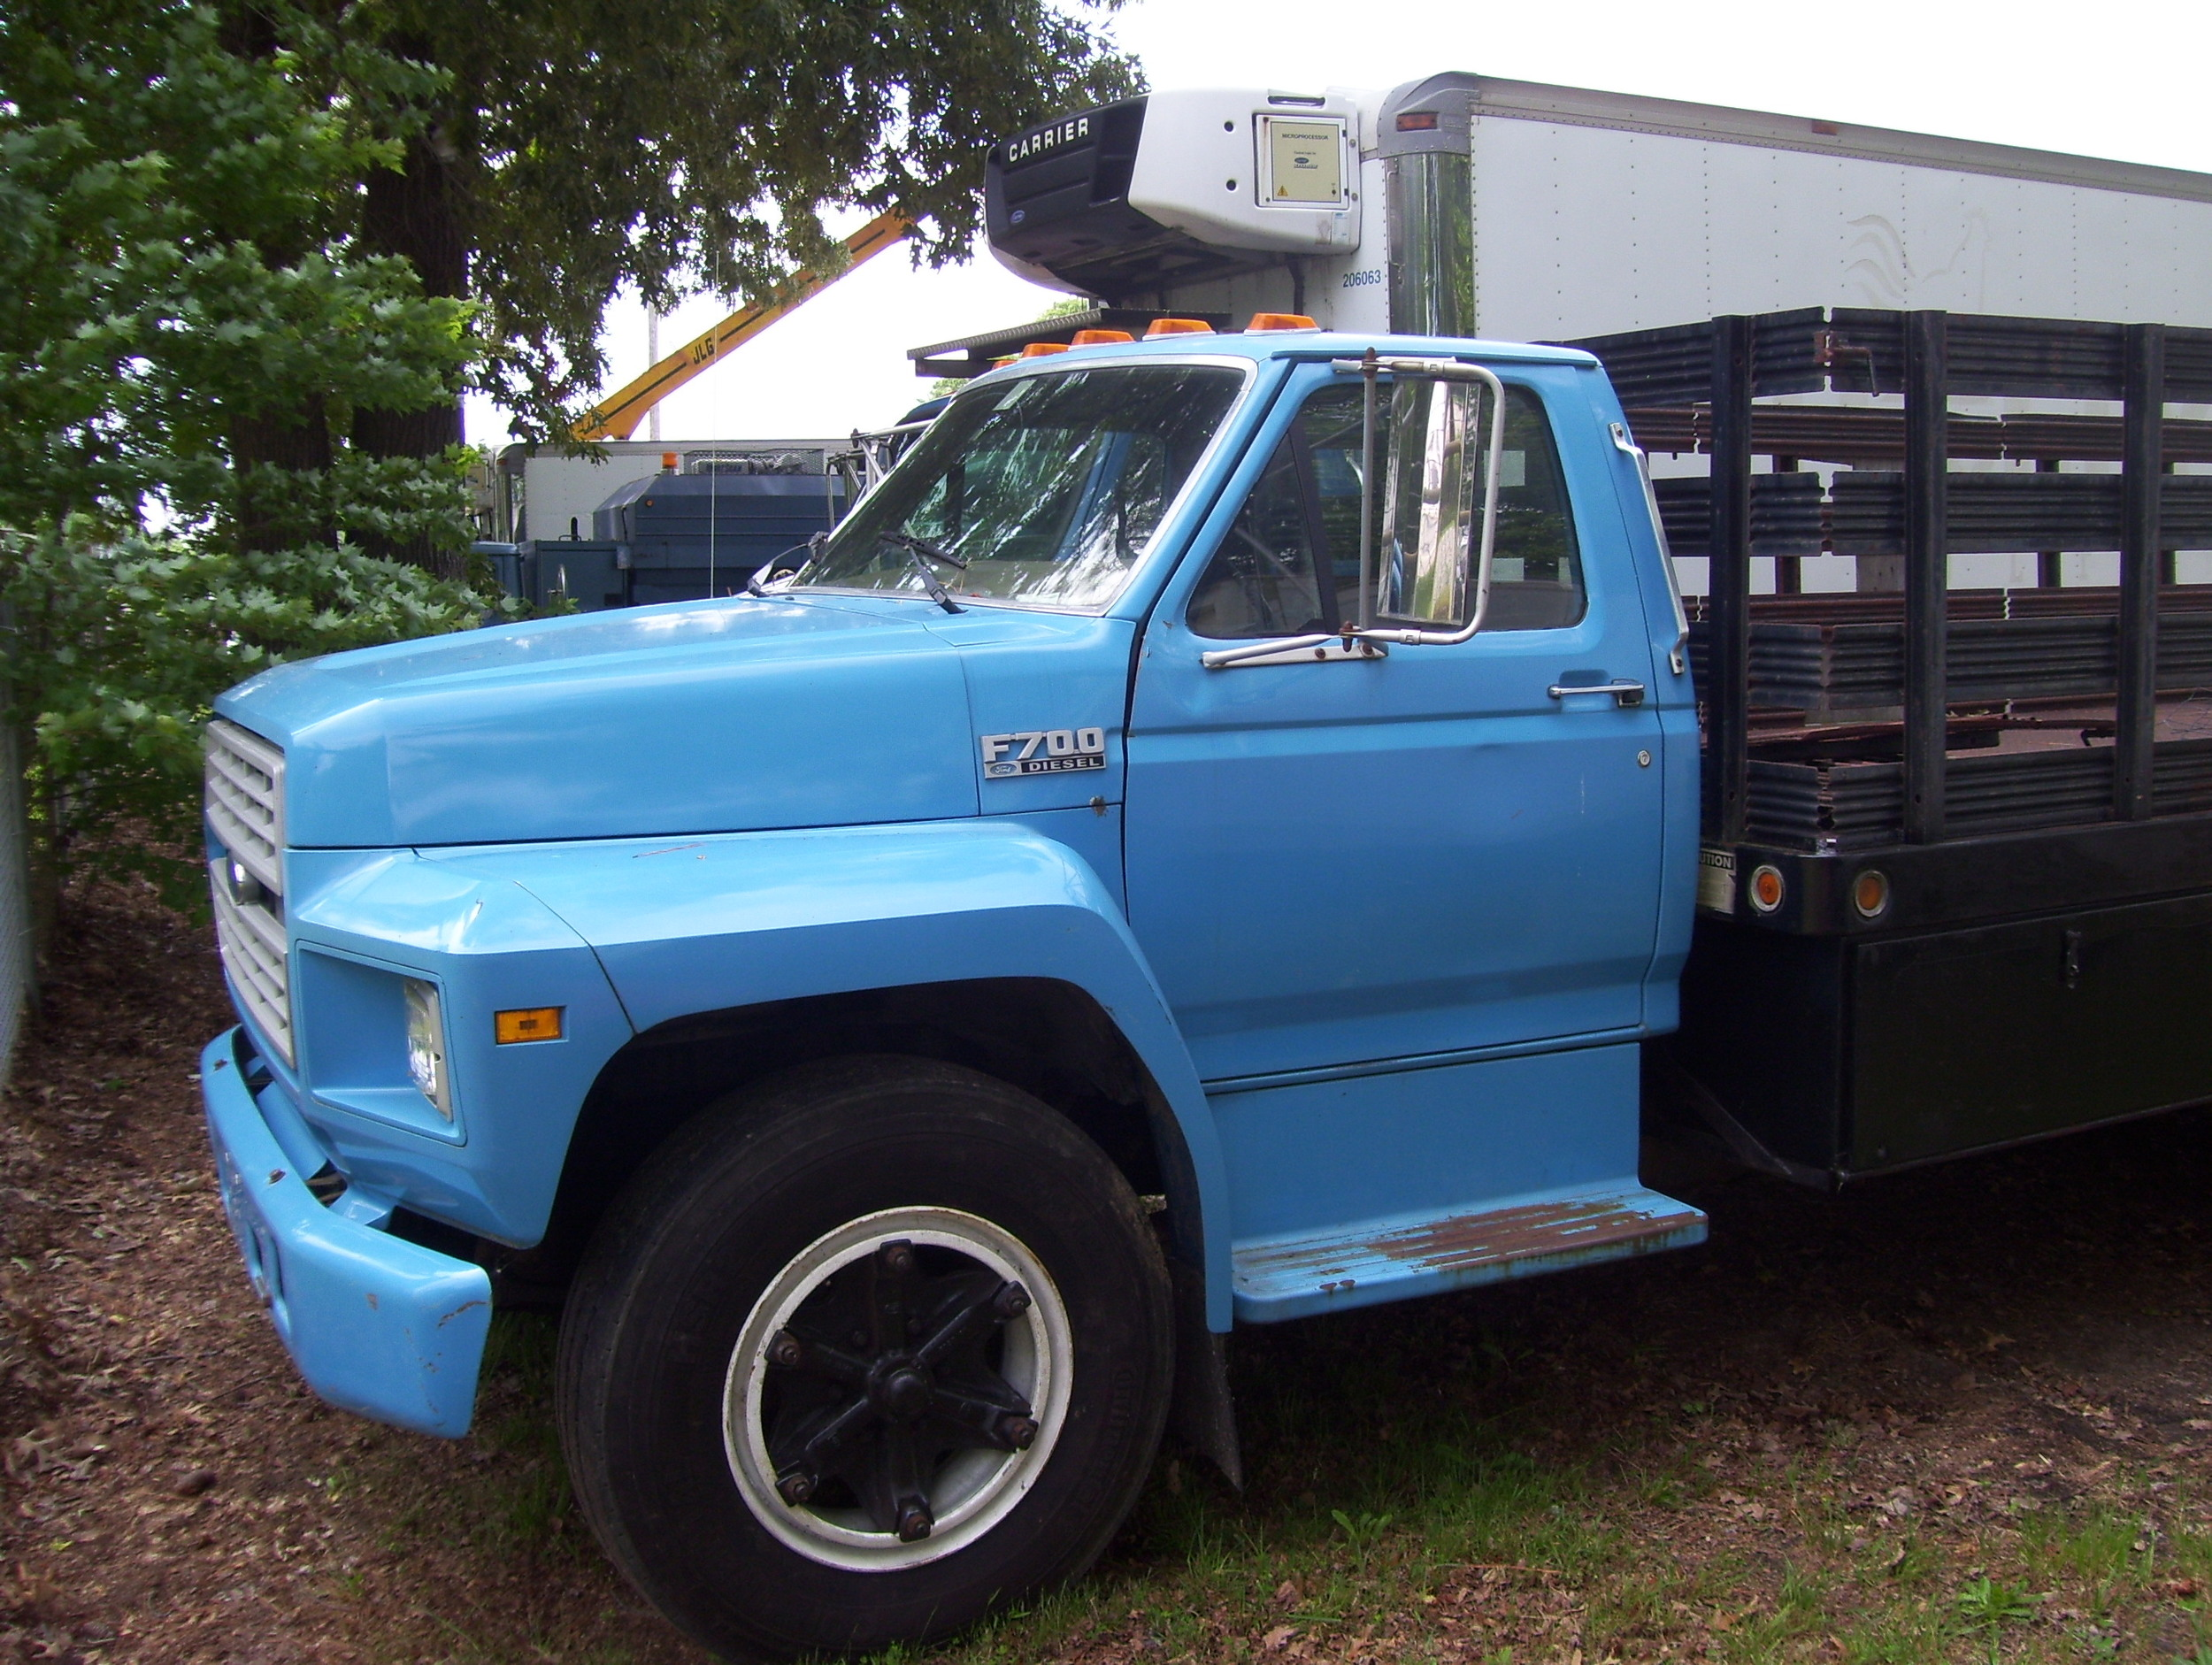 Ford F800 Stake Body with Liftgate 002.jpg